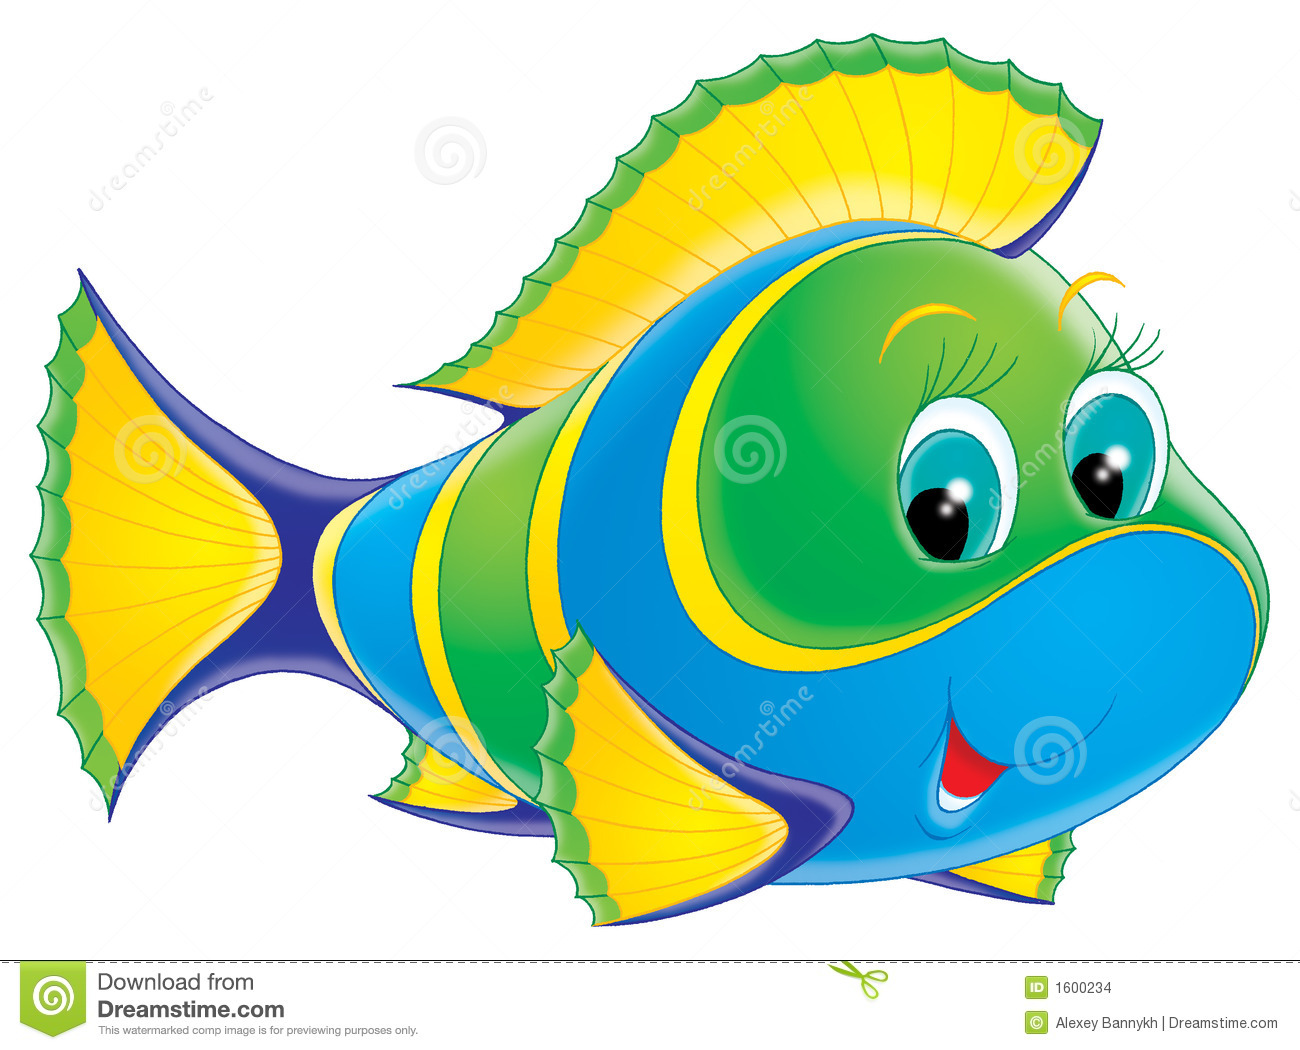 tropical fish clip art-tropical fish clip art-14